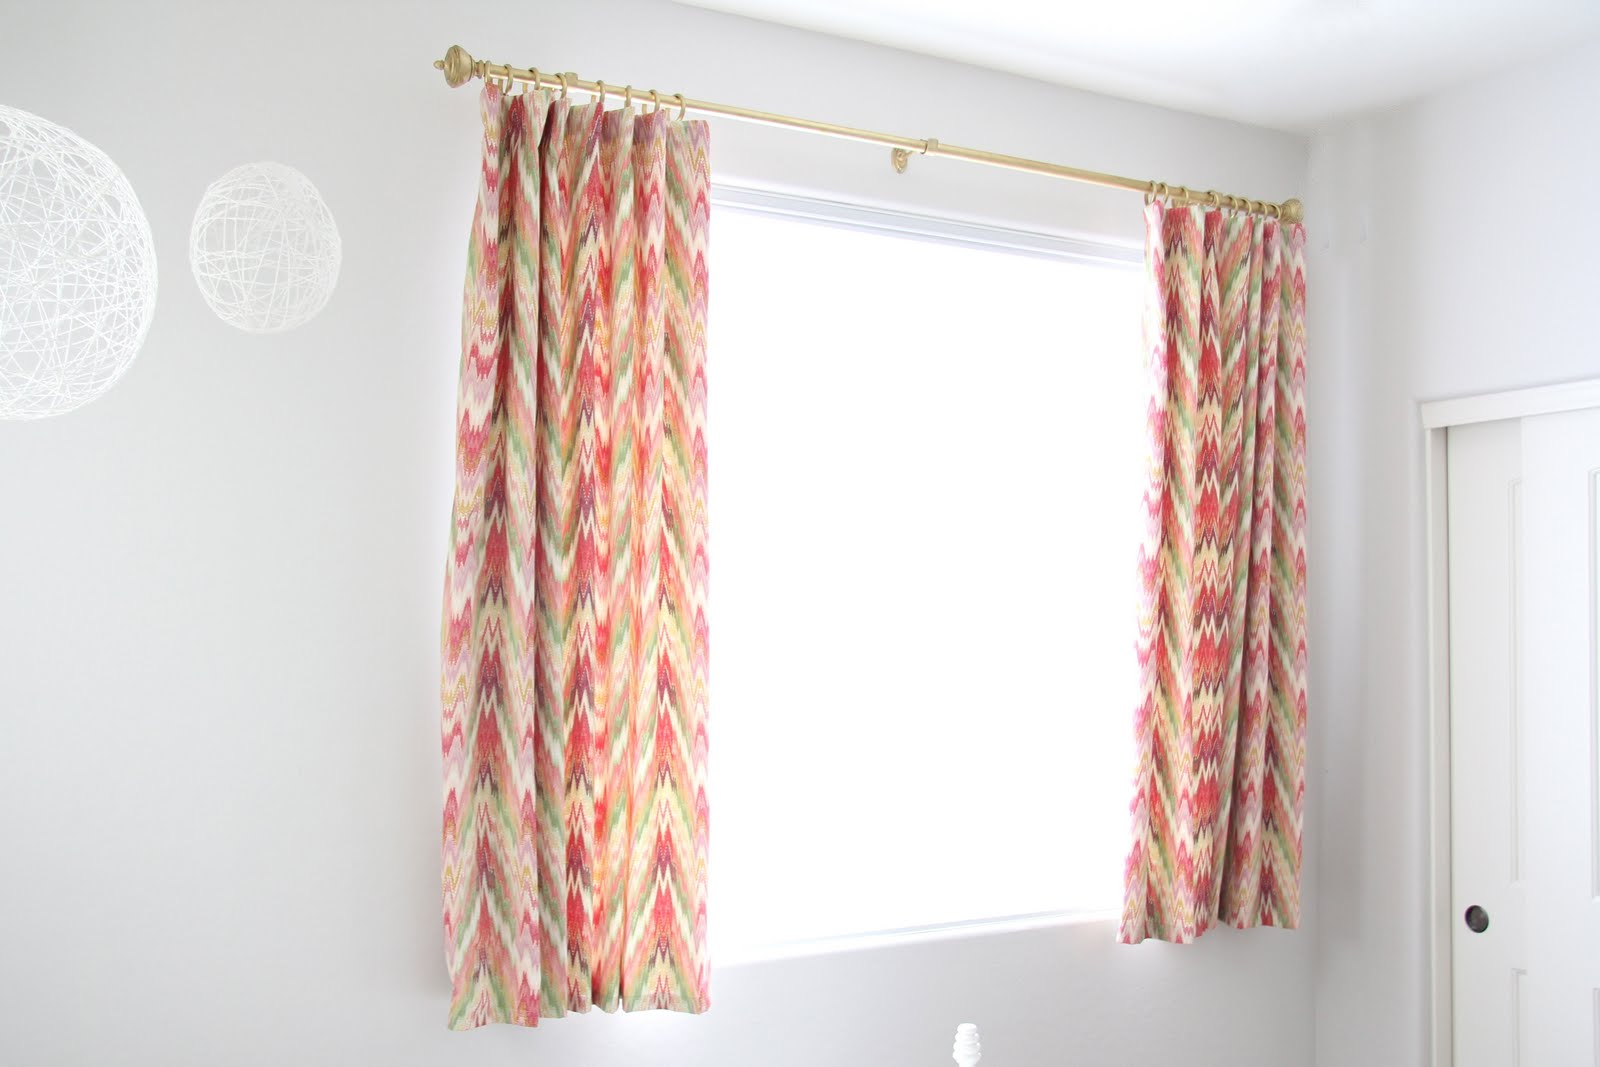 Short Curtains and a Pin Hook Tutorial